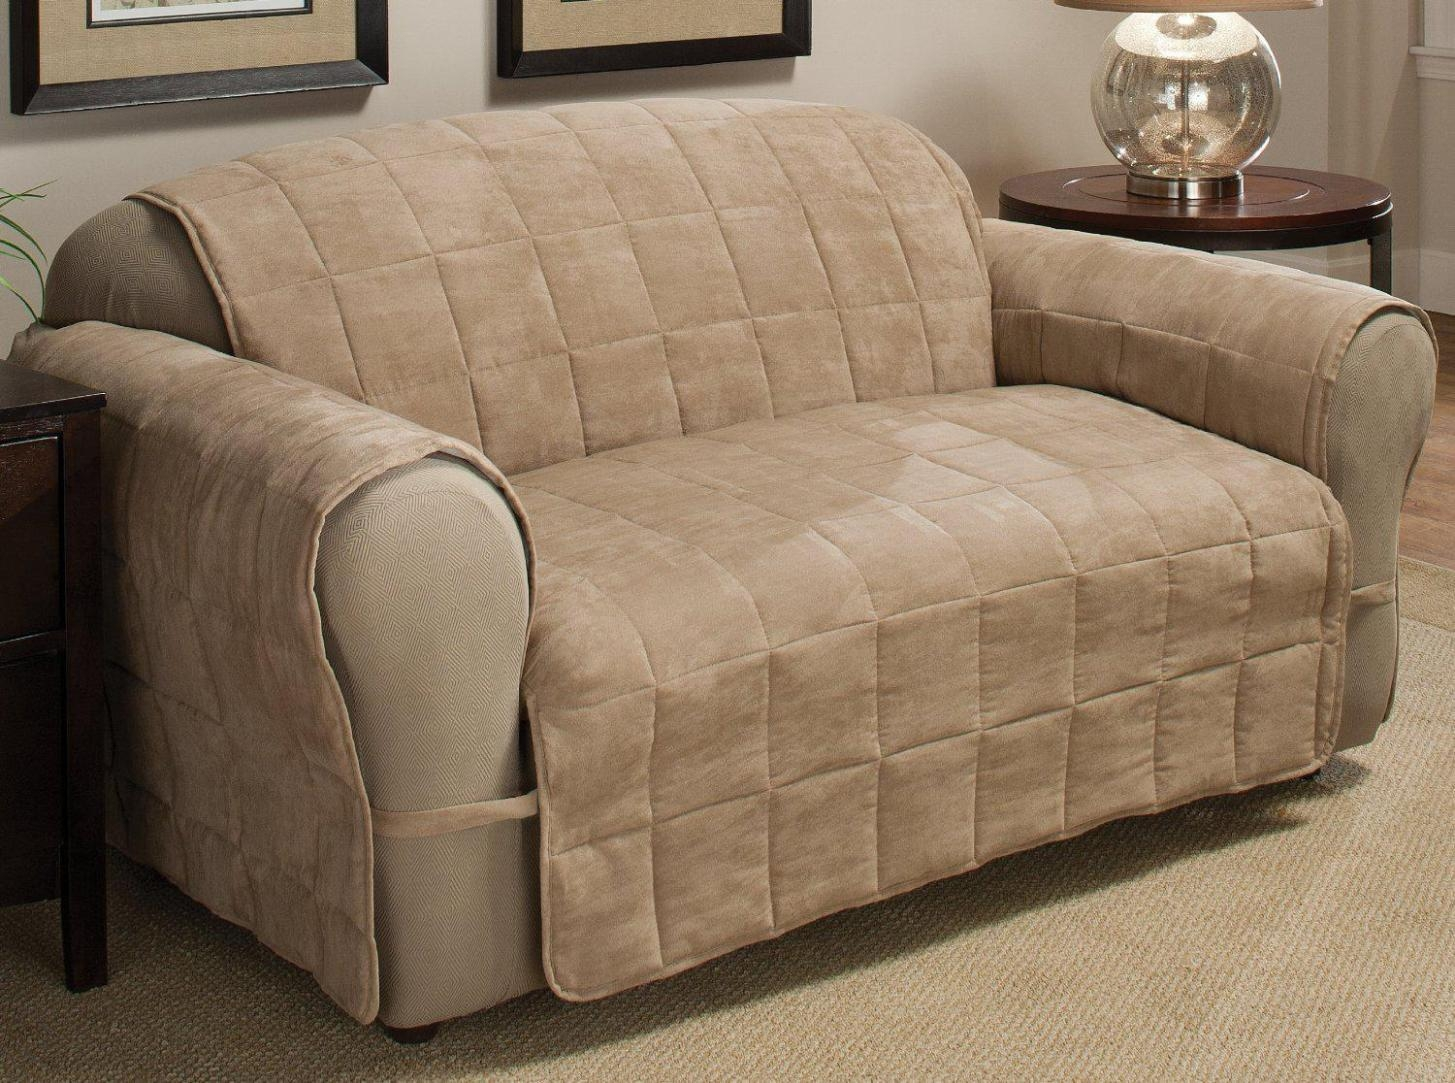 dual reclining sofa slipcover transitional style table 20 collection of for recliner sofas ideas